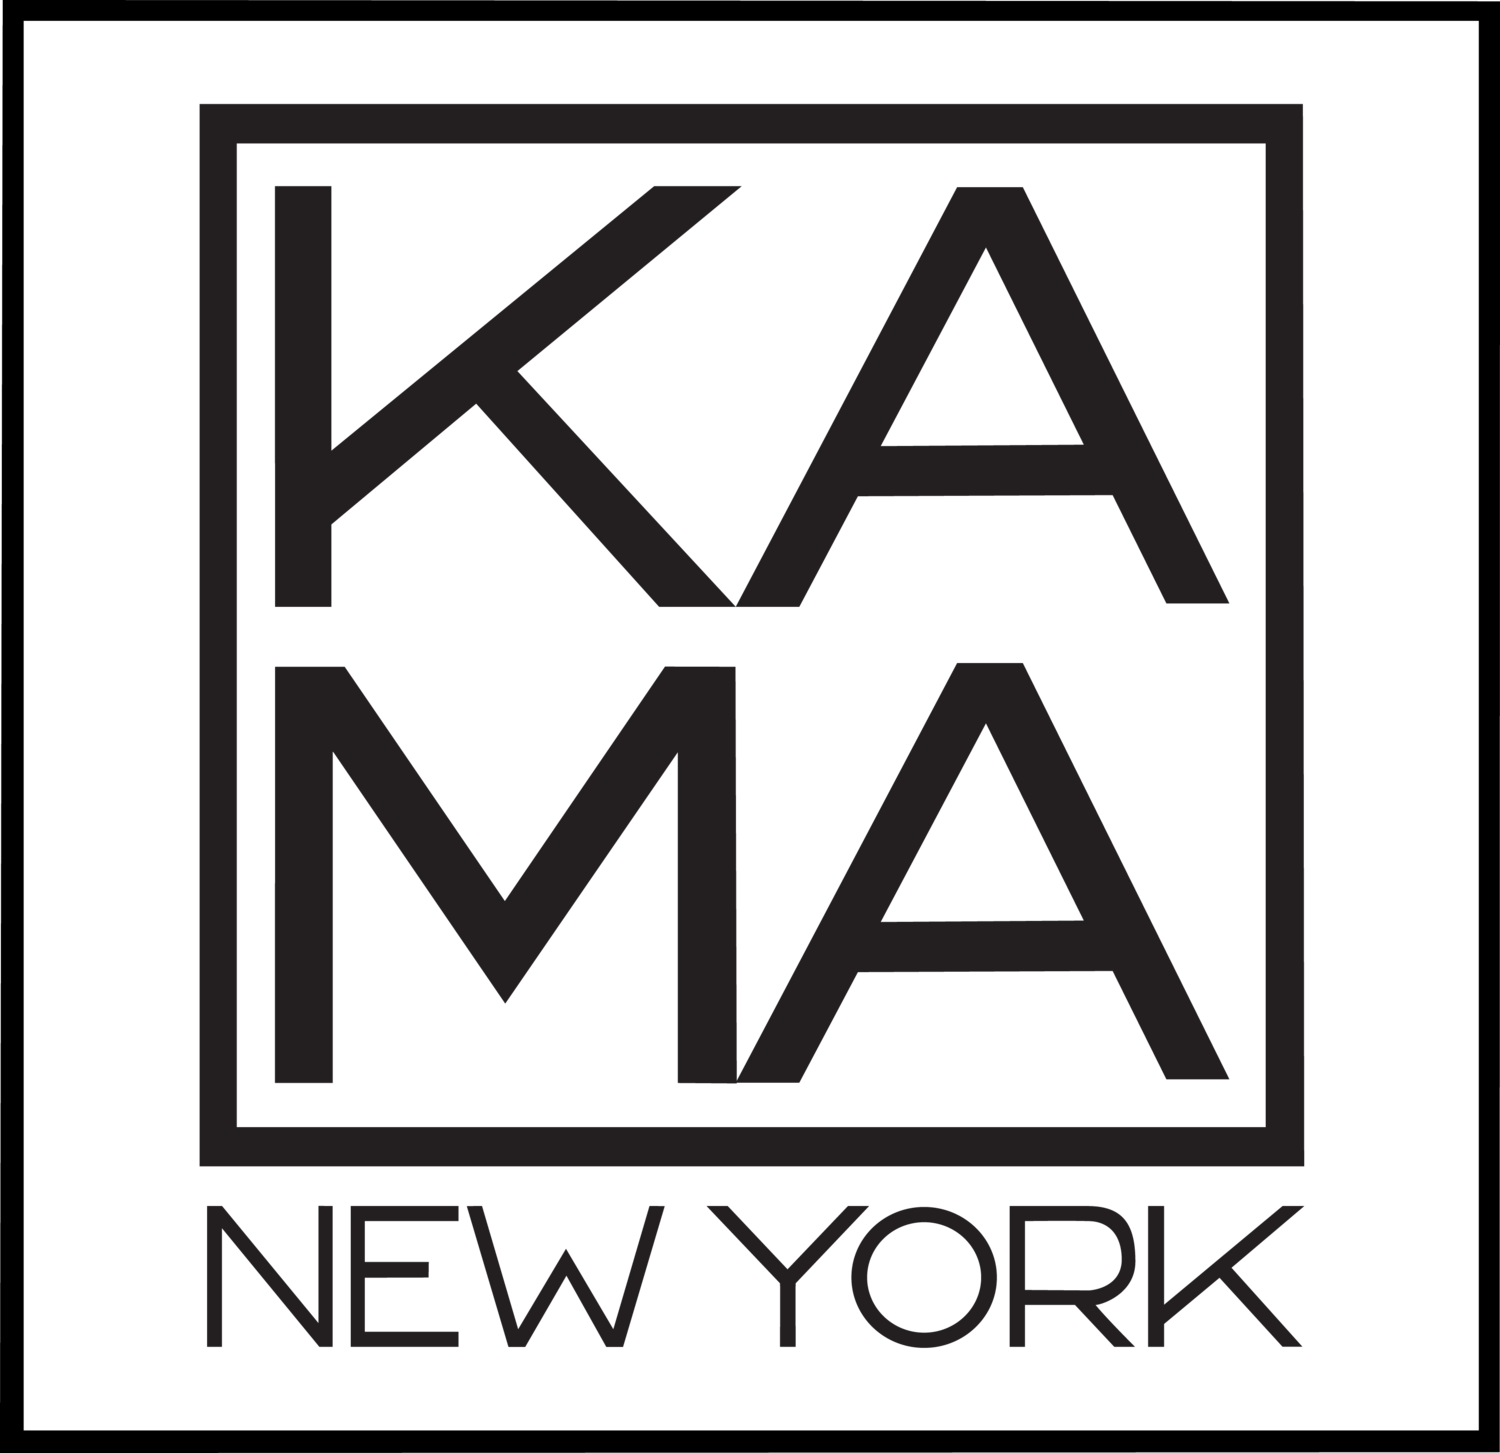 kama new york